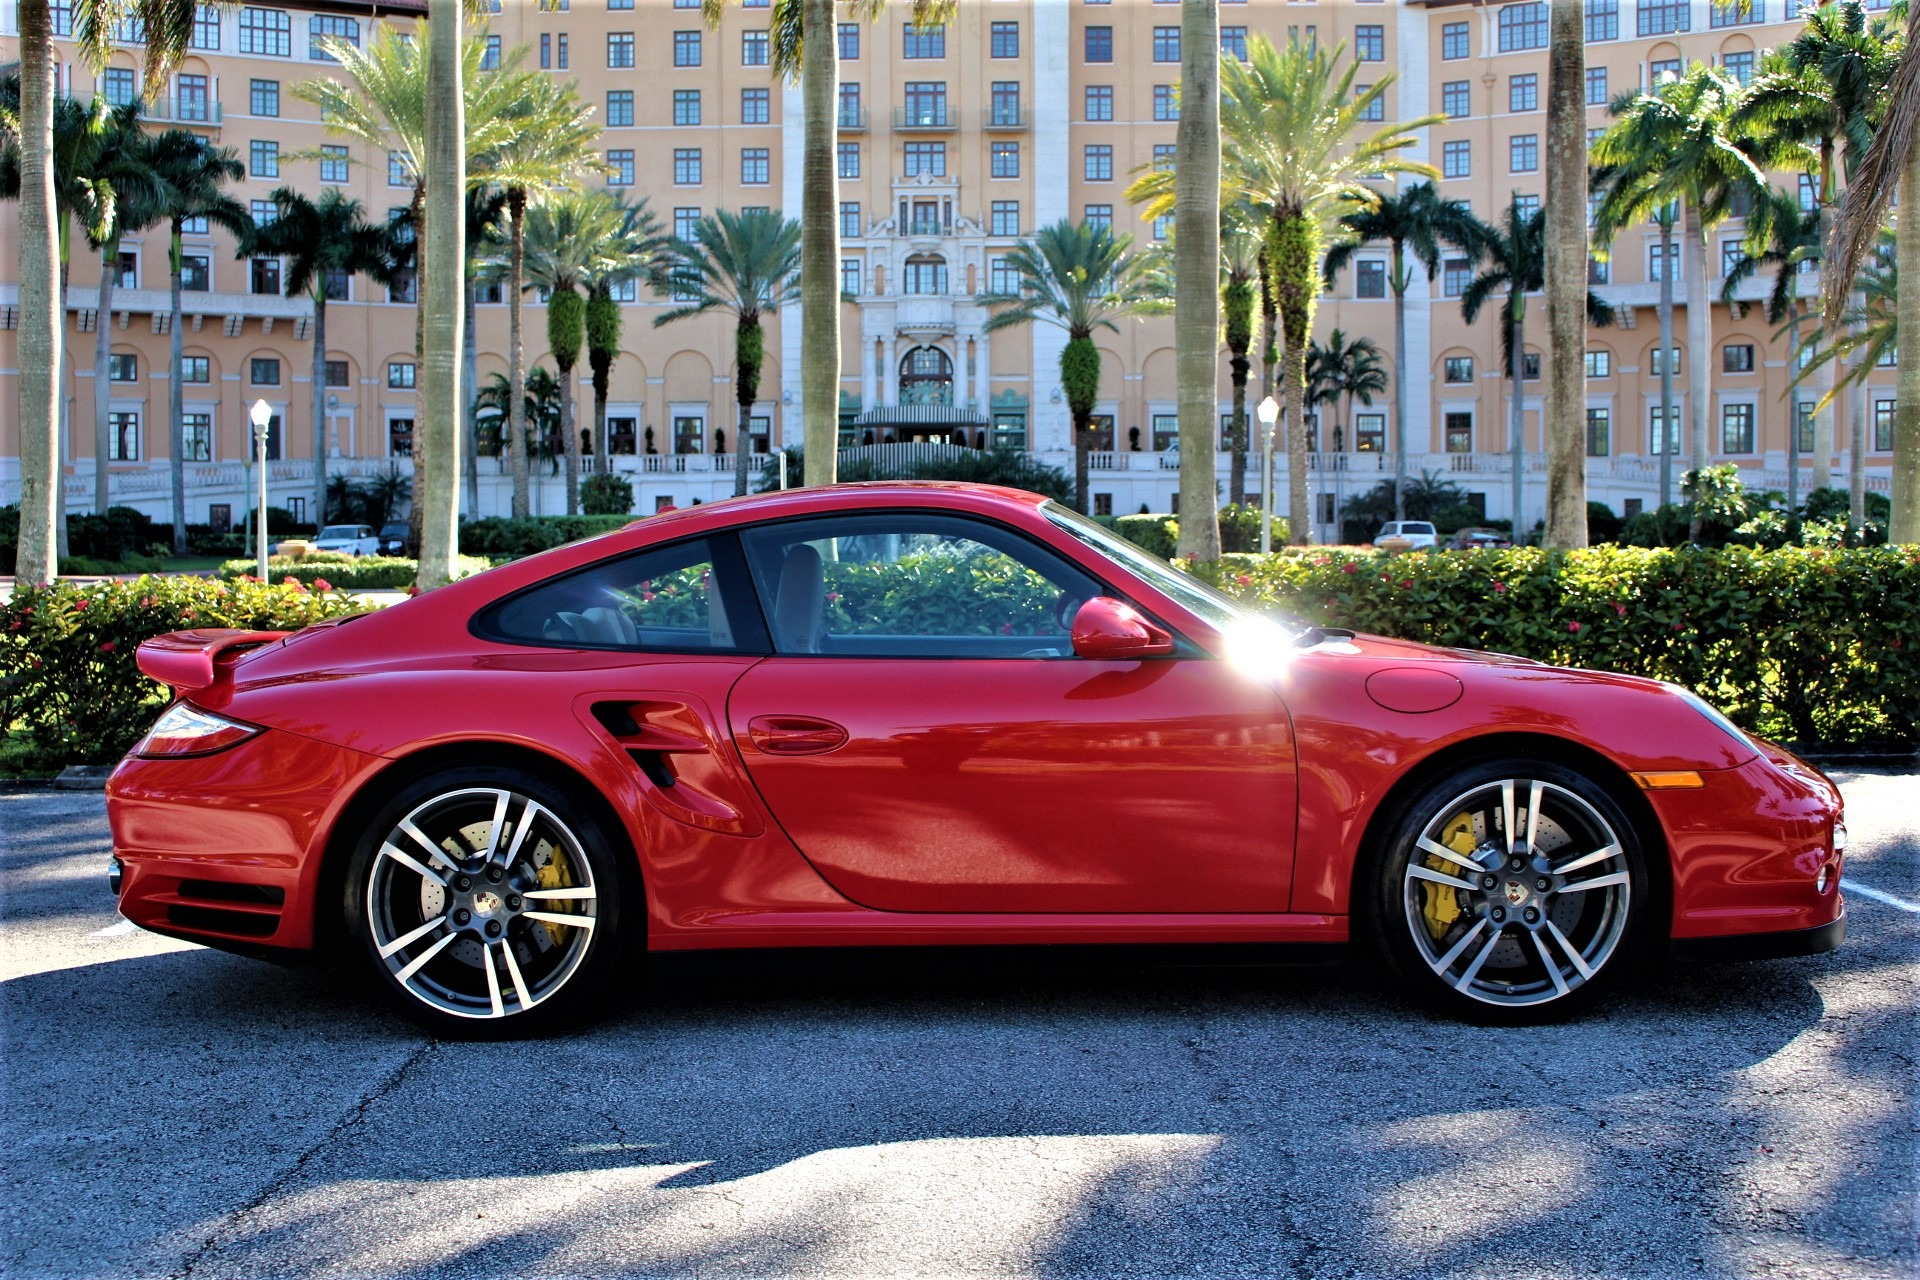 Used 2012 Porsche 911 Turbo for sale Sold at The Gables Sports Cars in Miami FL 33146 2